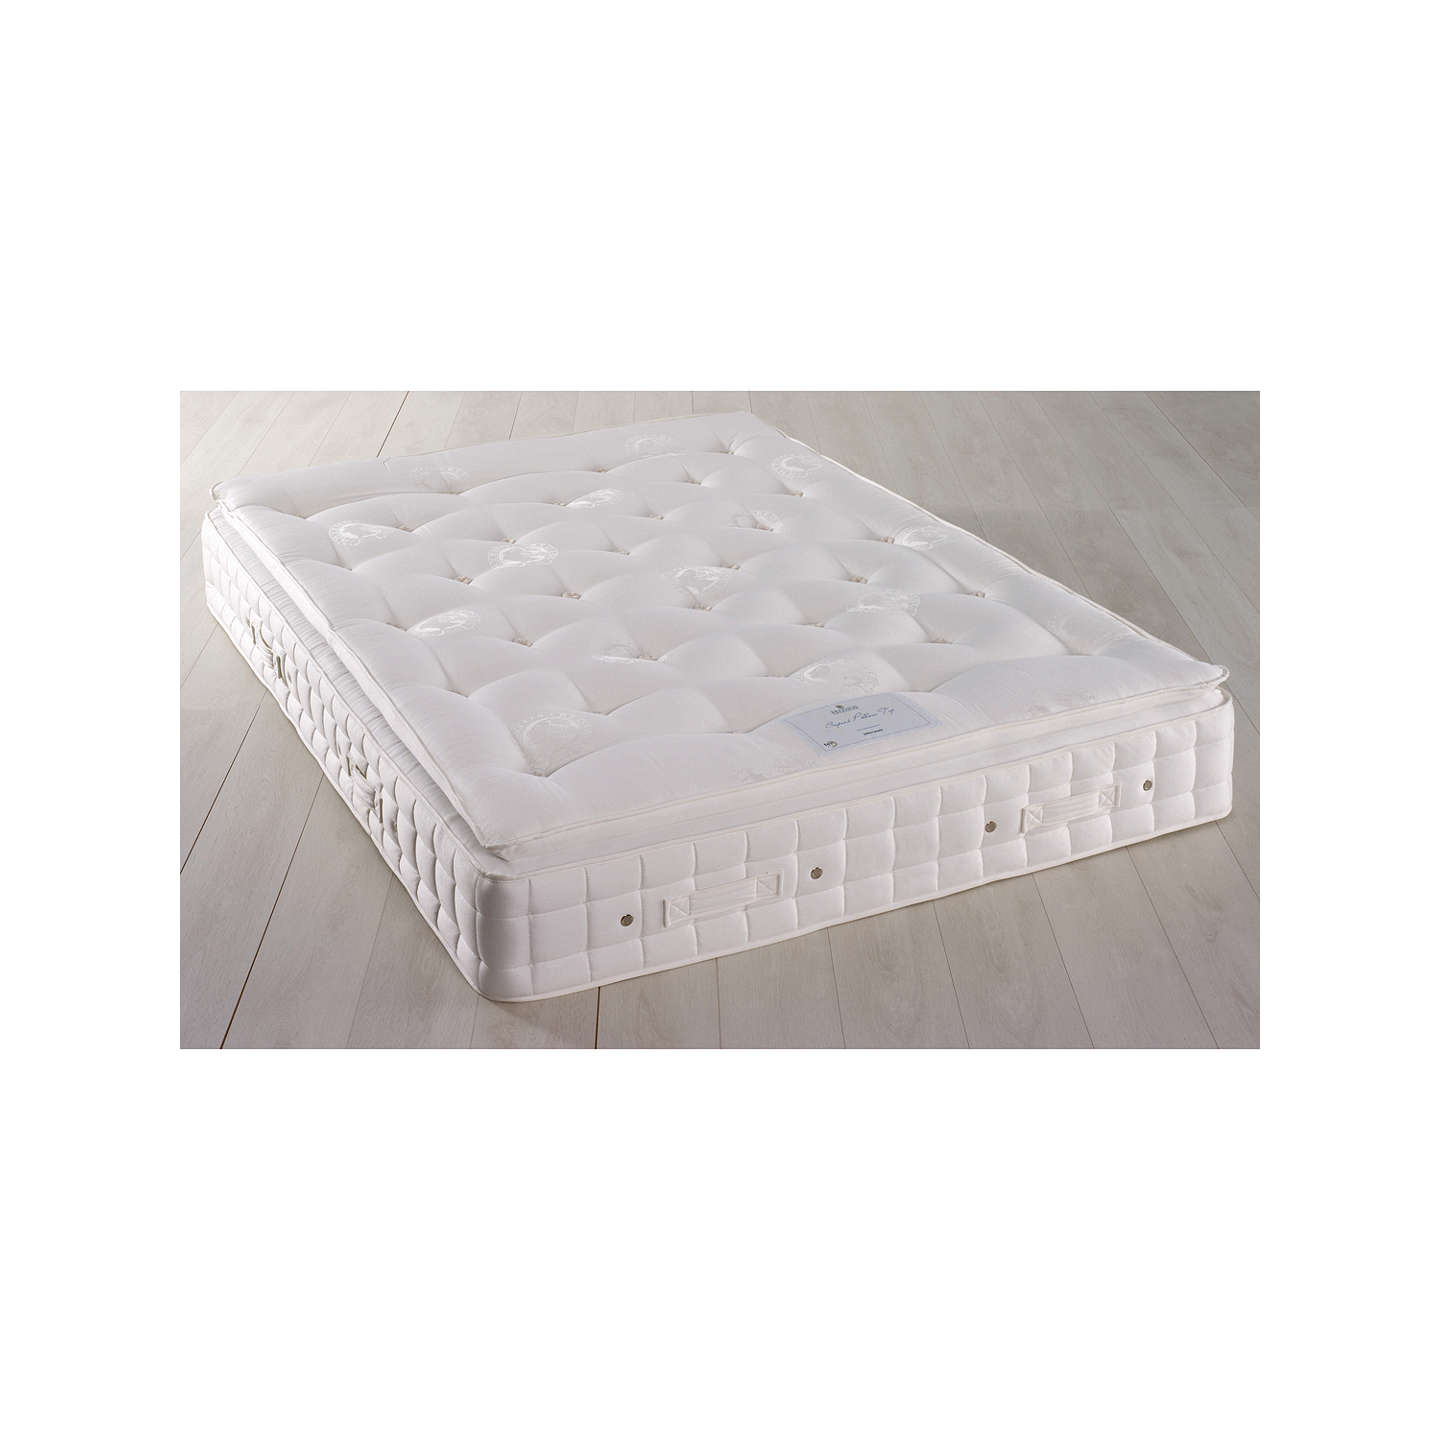 BuyHypnos Superb Pillow Top Pocket Spring Mattress, Firm, King Size Online  at johnlewis.